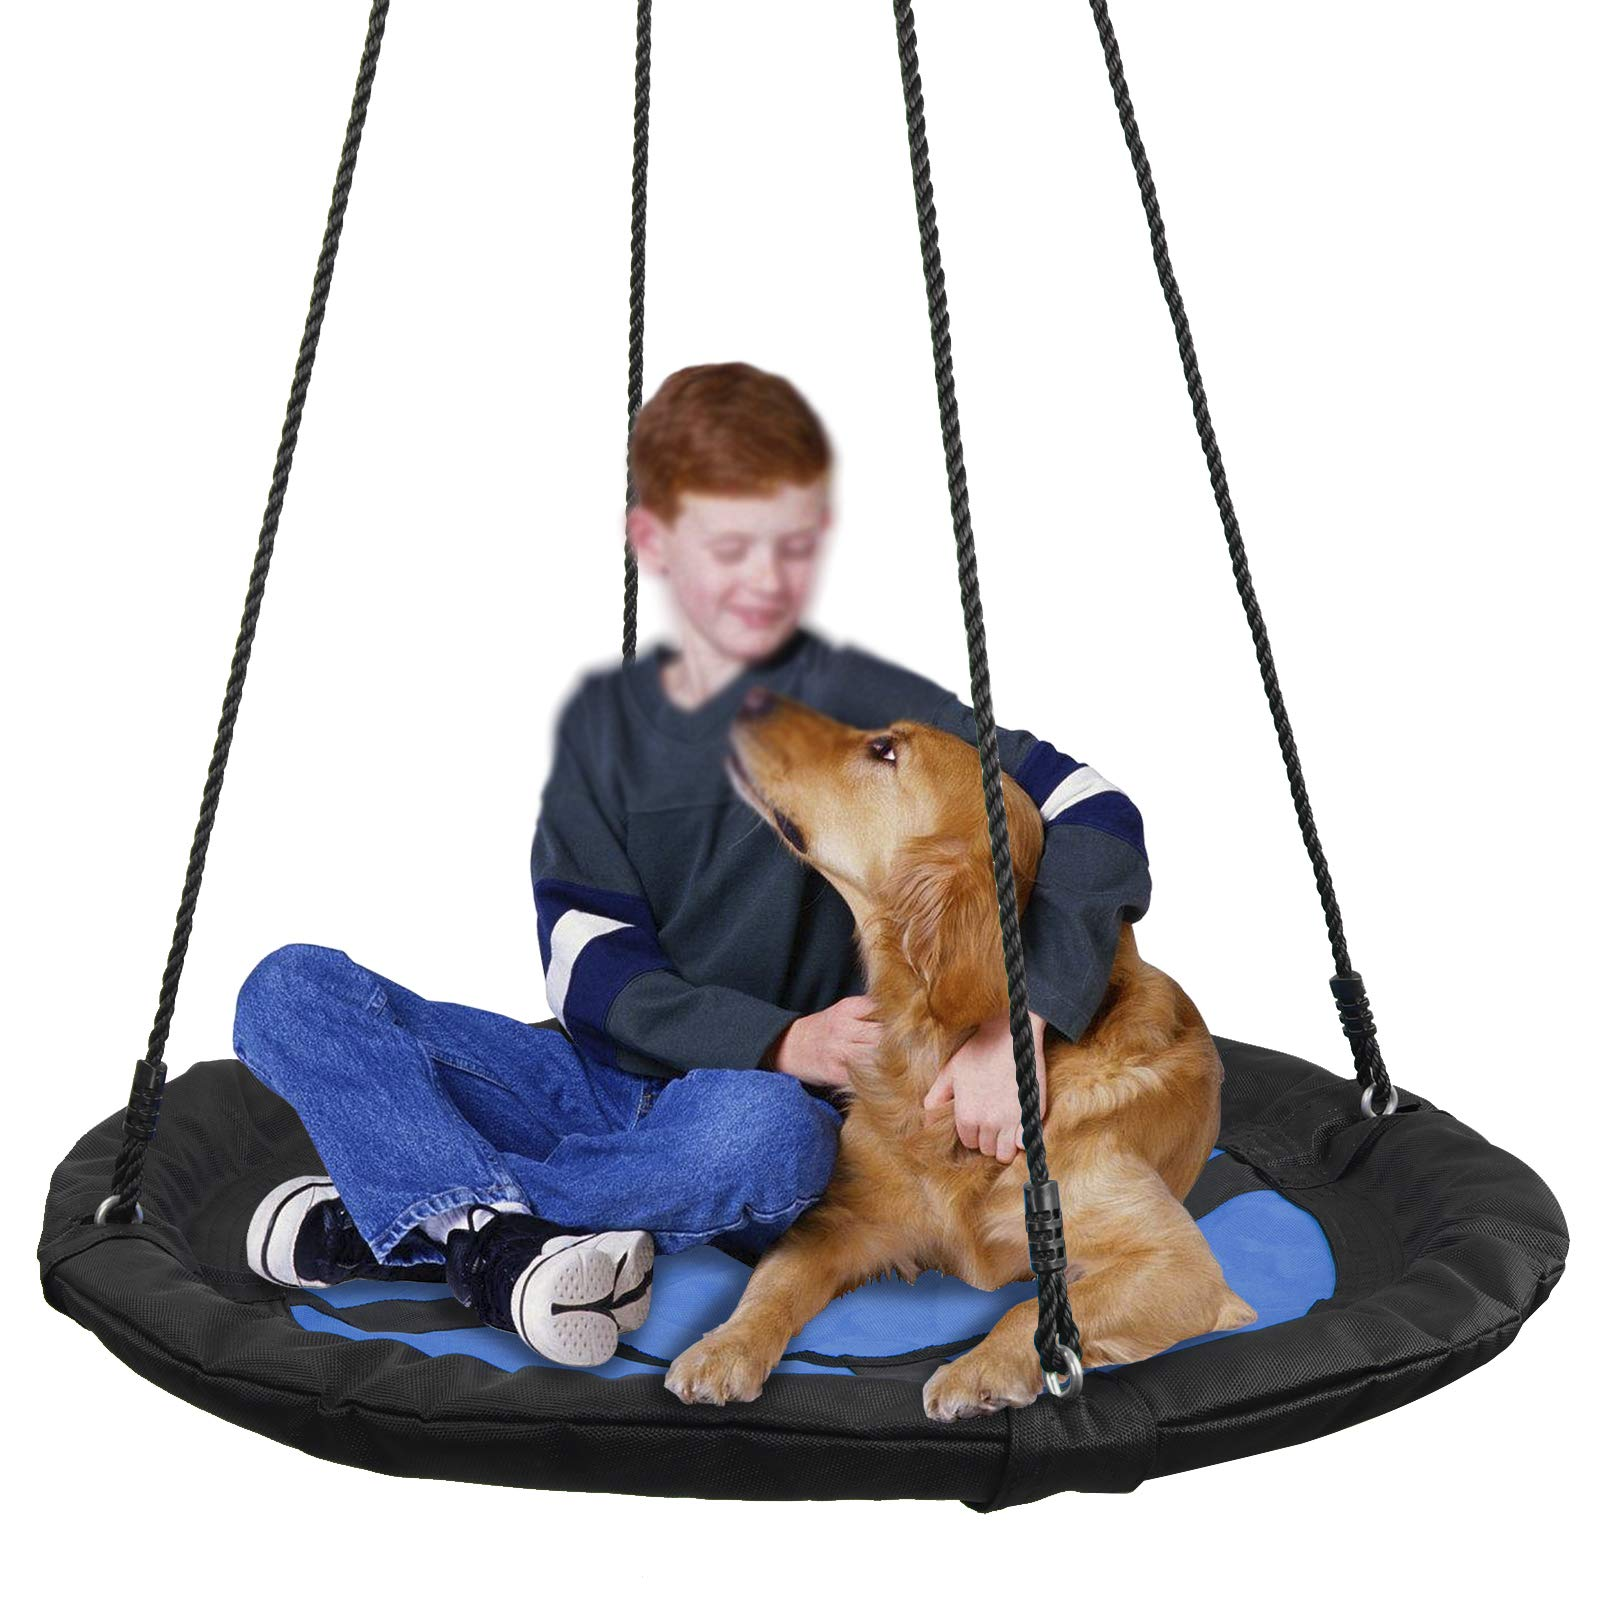 SUPER DEAL 40'' Waterproof Saucer Tree Swing Set - 360 Rotate° - Attaches to Trees or Existing Swing Sets - Adjustable Hanging Ropes - for Kids, Adults and Teens, 3 Colors (Bright Blue) by SUPER DEAL